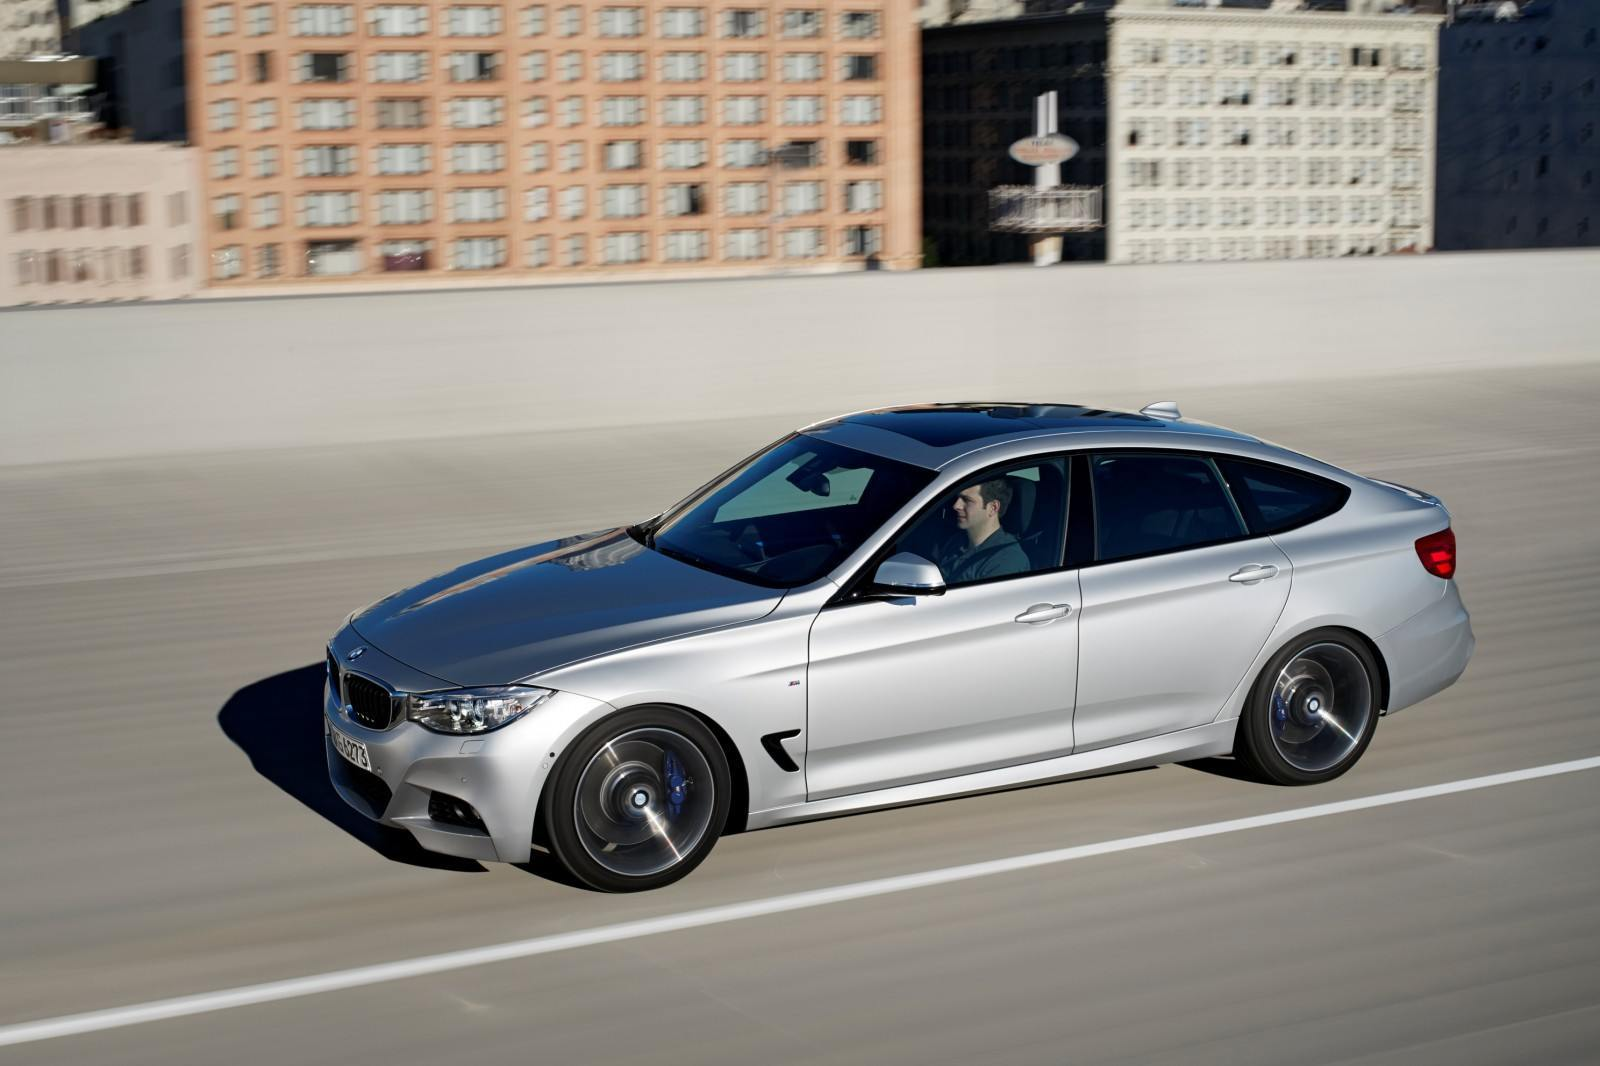 Best of Awards - 1000 miles at 100MPH - 2014 M Sport BMW 335i GT 53